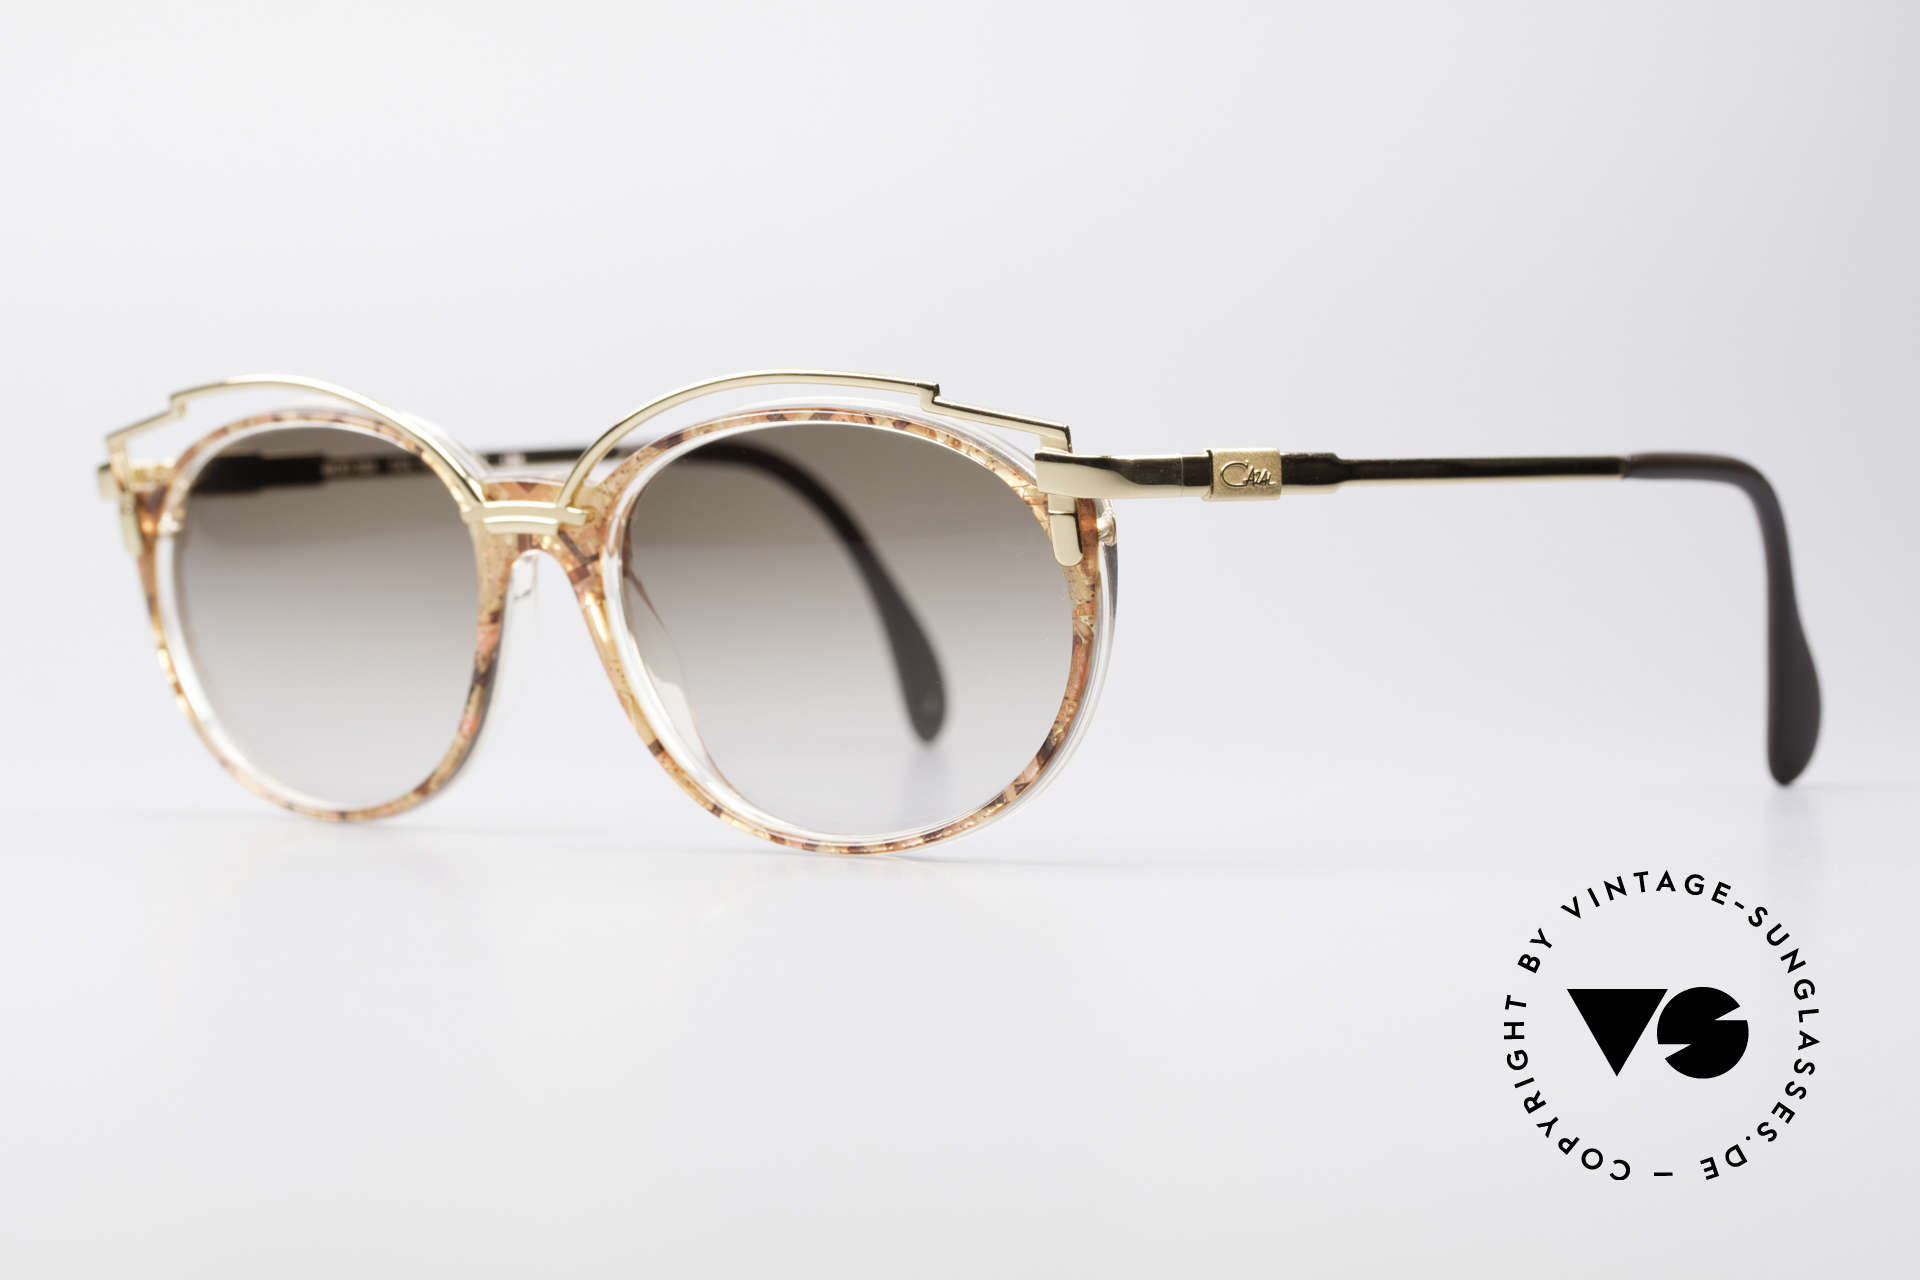 Cazal 358 90's Ladies Sunglasses Vintage, the design looks even more spectacular with sun lenses, Made for Women